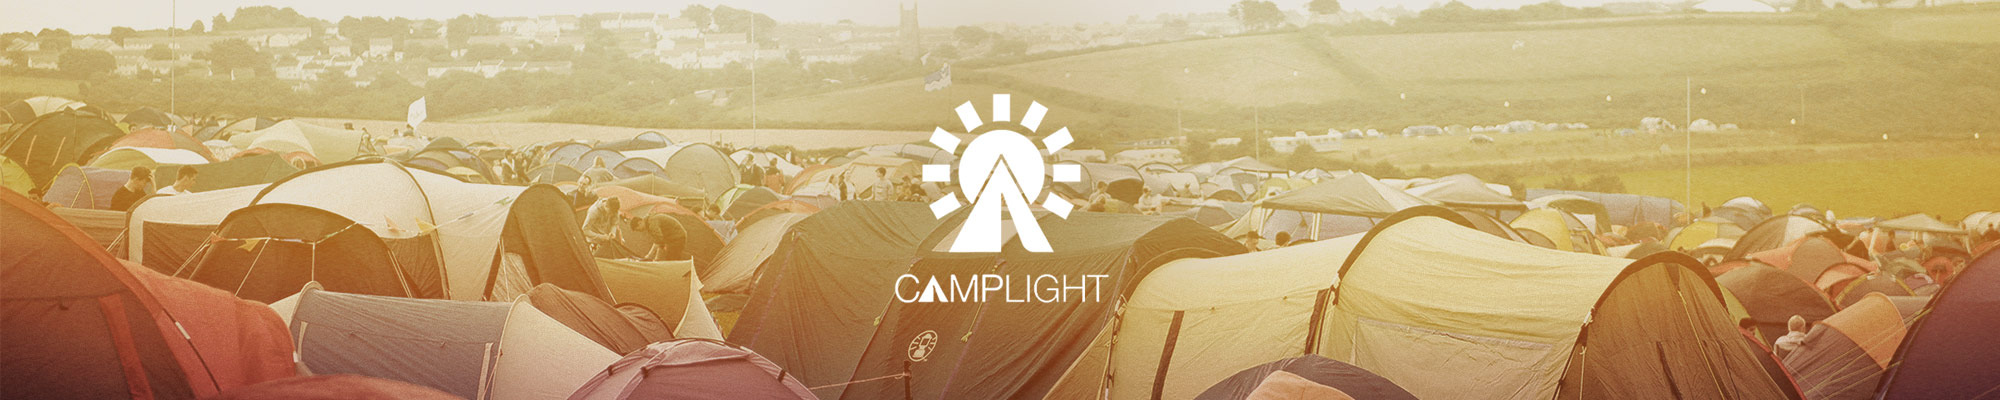 Camplight Pre-Pitched Tents